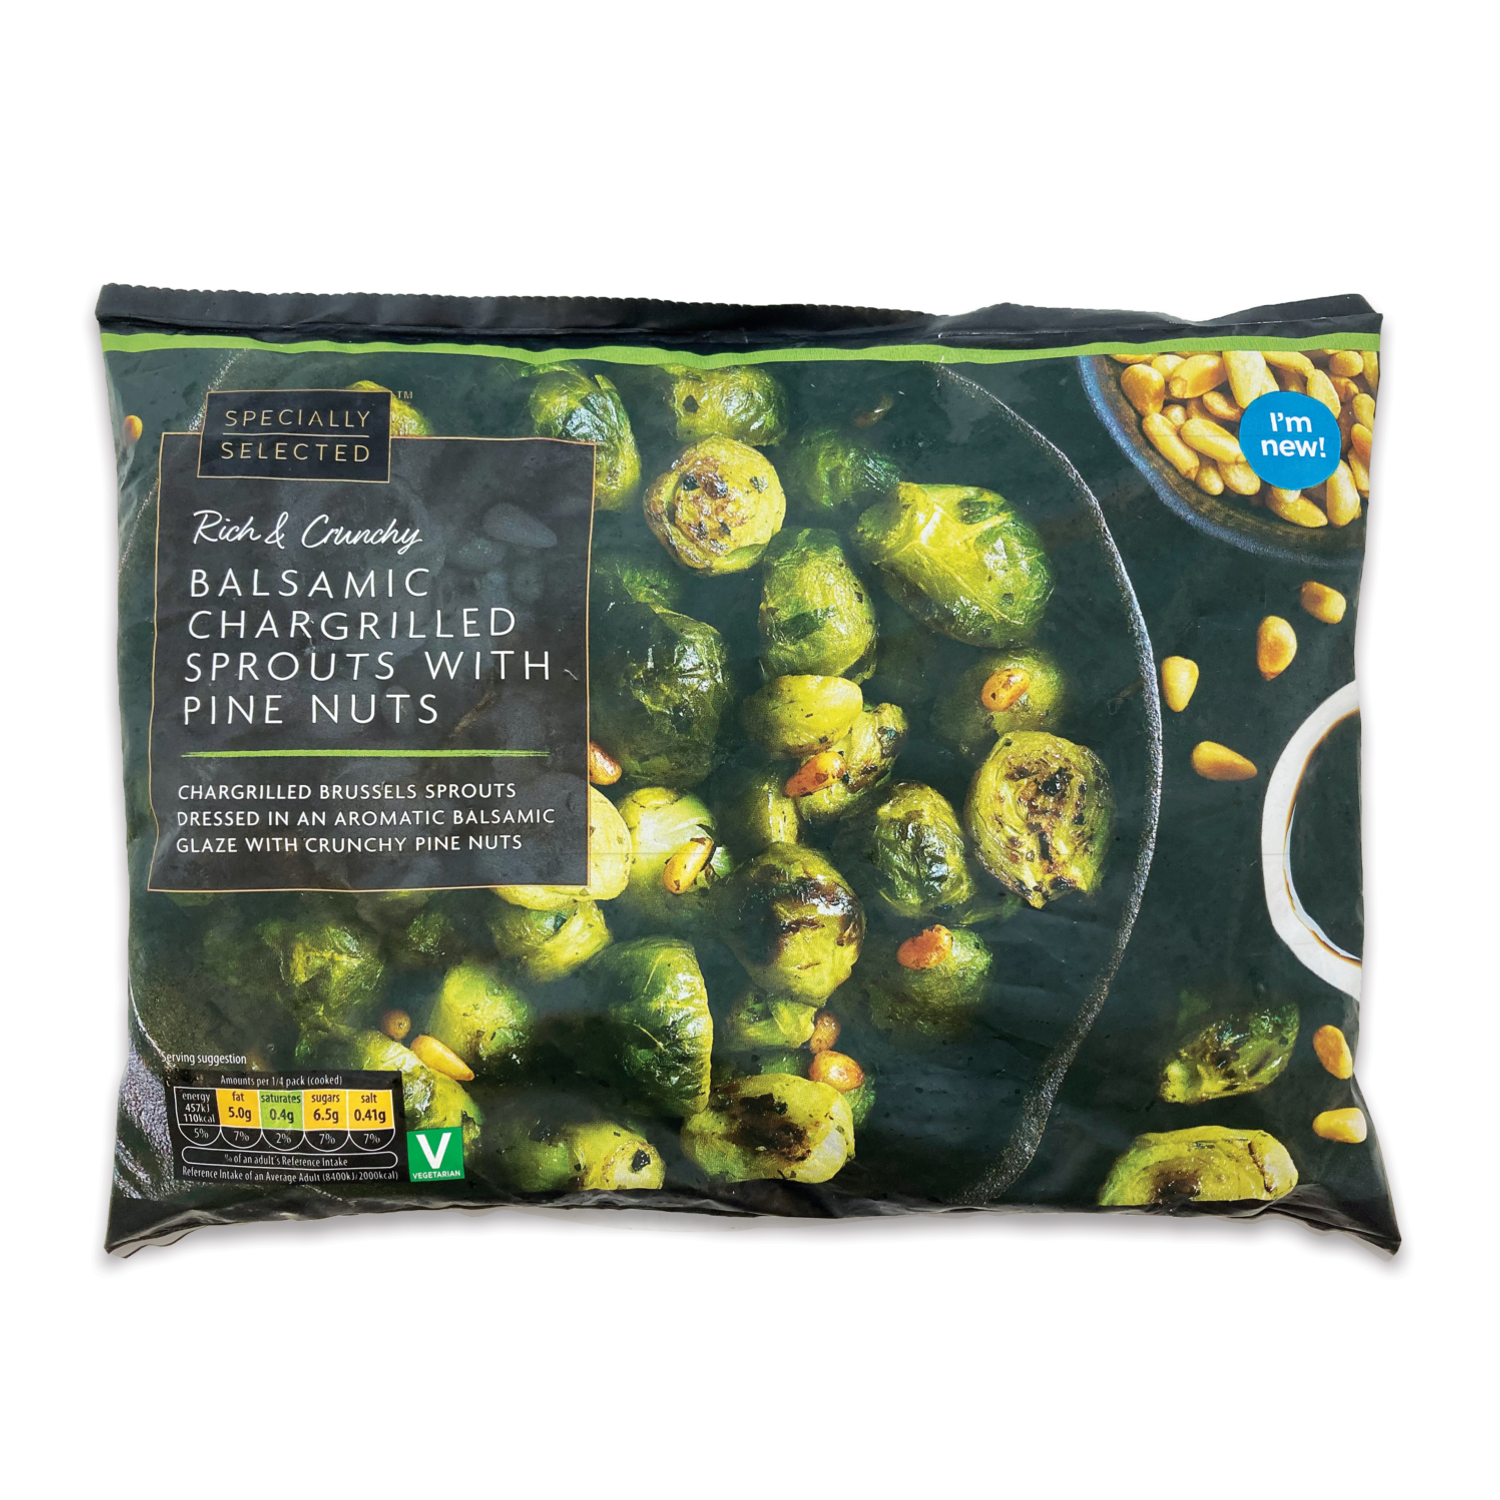 Specially Selected Balsamic Chargrilled Sprouts With Pine Nuts 400g